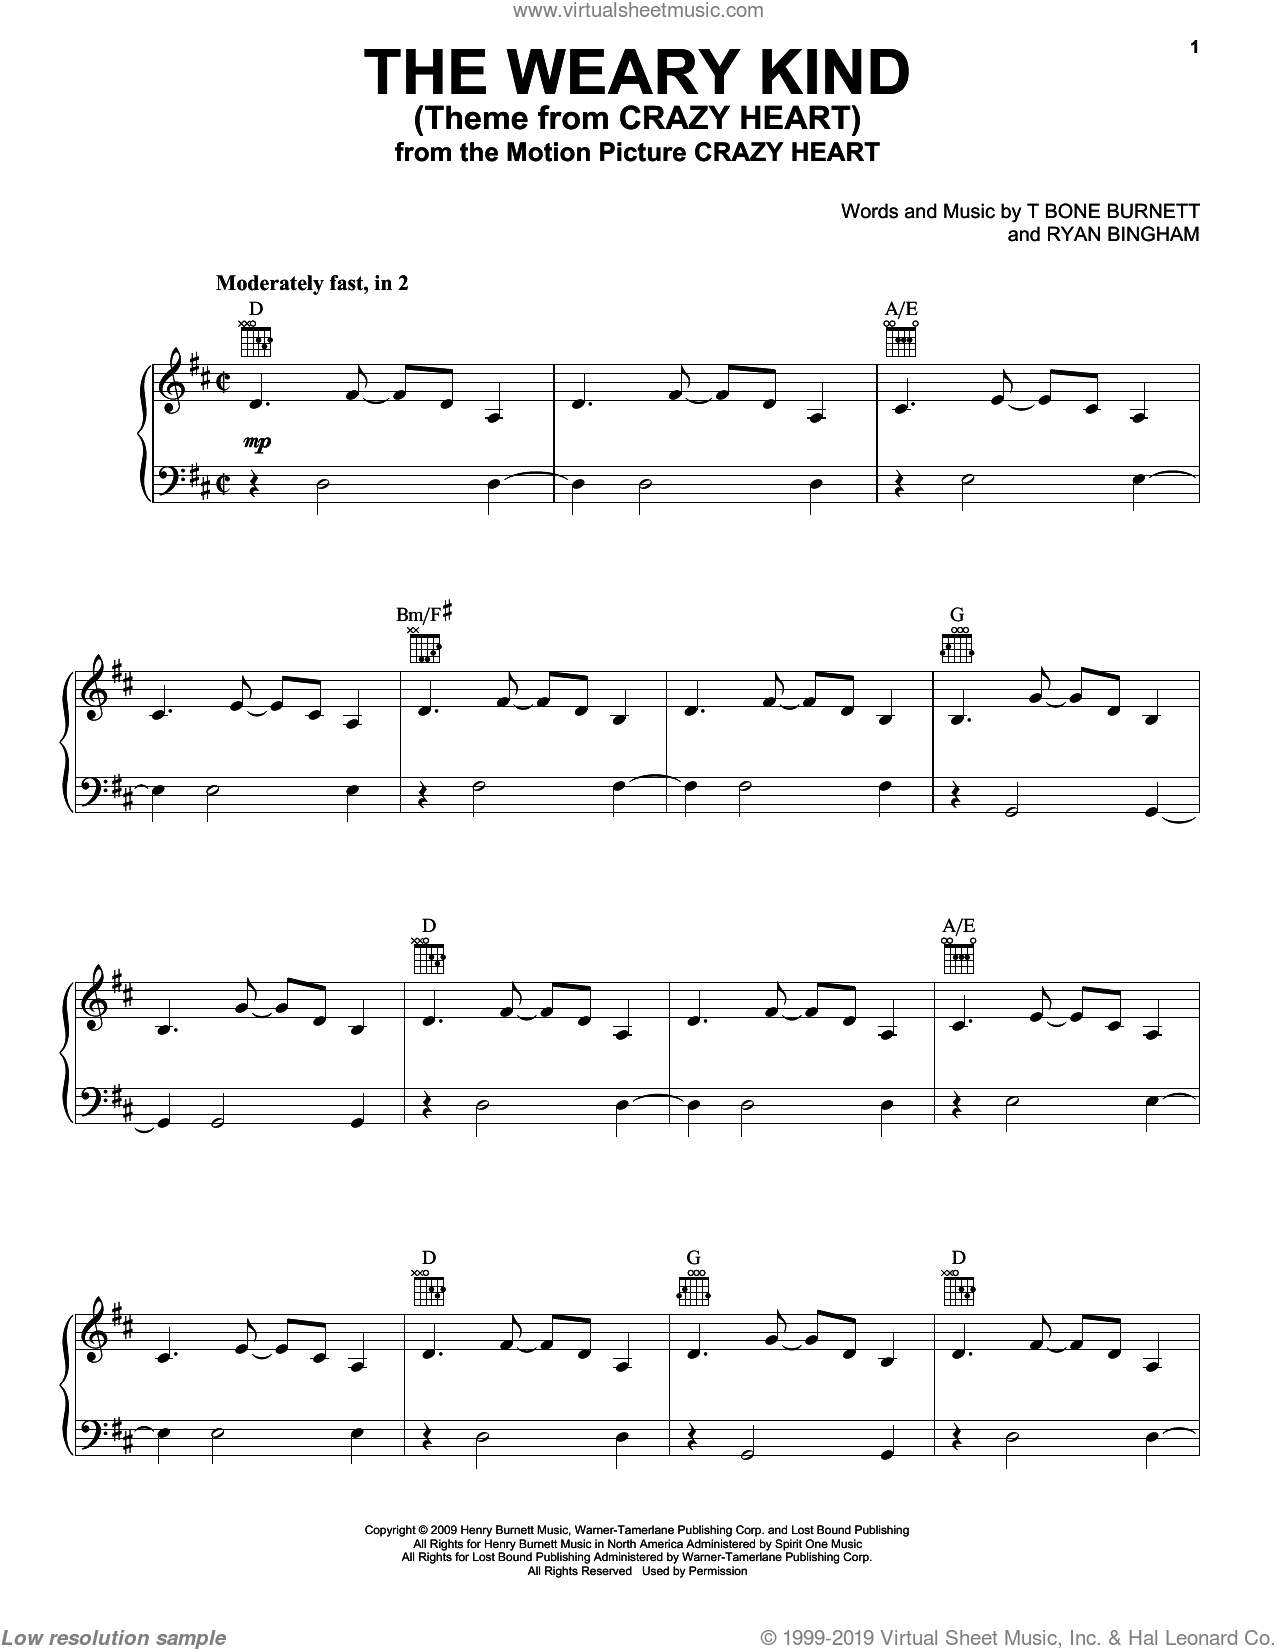 The Weary Kind (Theme From Crazy Heart) sheet music for voice, piano or guitar by Ryan Bingham